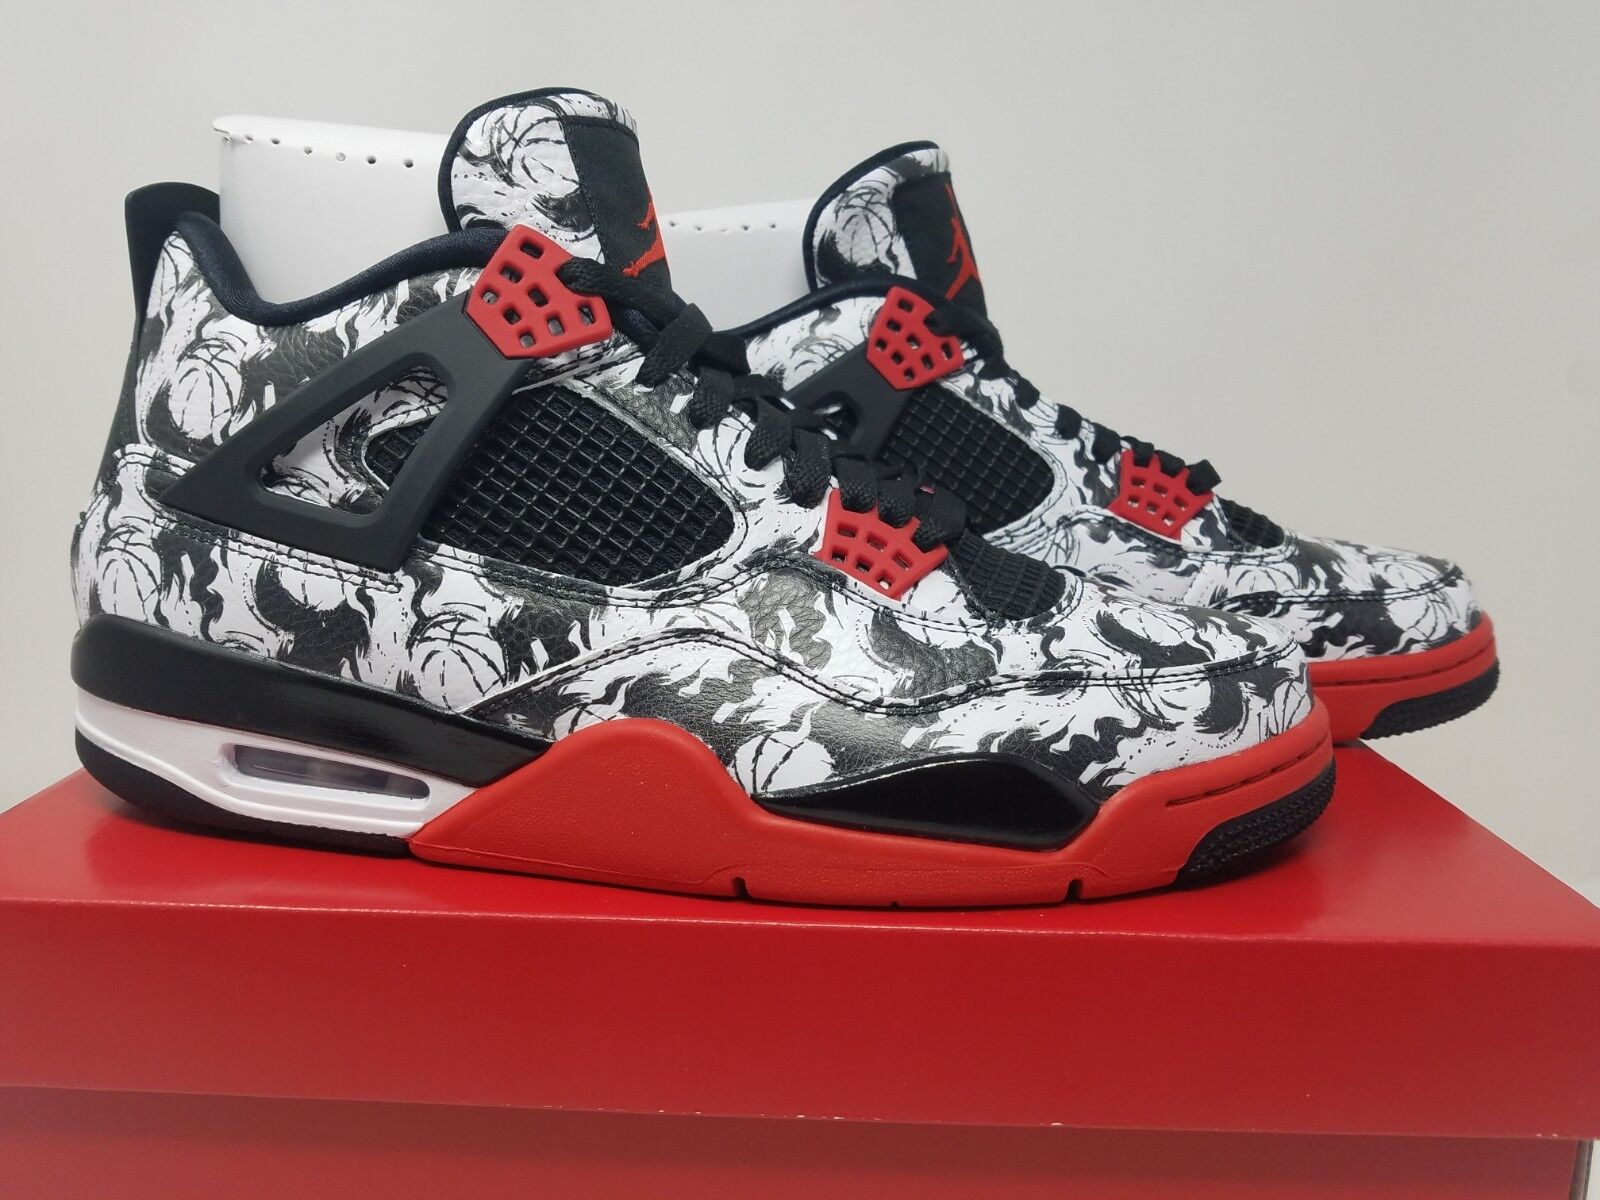 4e86d43a7c7 Nike Air Jordan Jordan Jordan 4 Retro Tattoo SNGL DY Size 11 Mens White  Black Red BQ0897 006 805a34